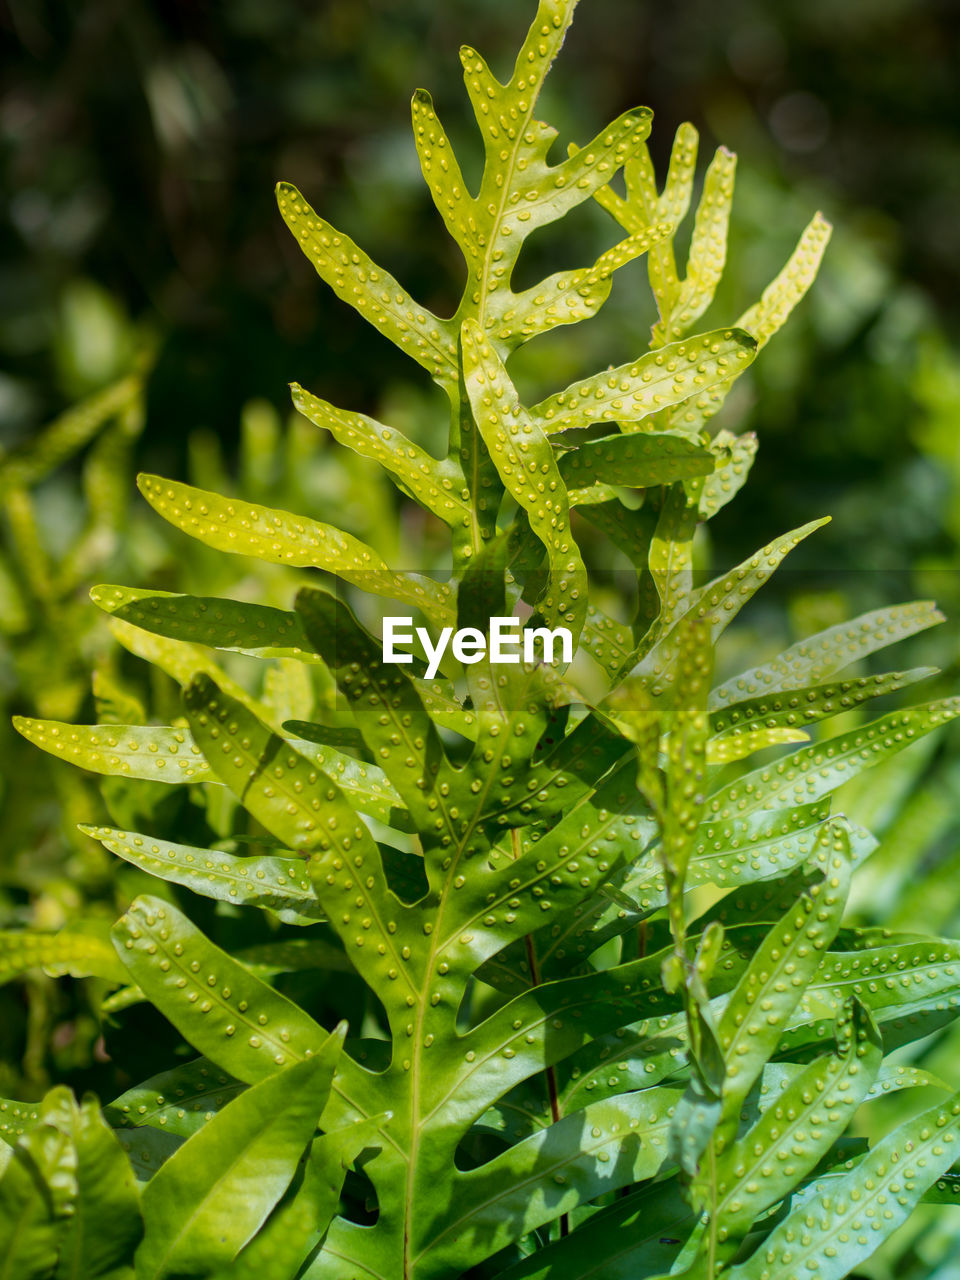 green color, growth, plant, nature, leaf, no people, freshness, close-up, beauty in nature, full frame, outdoors, day, healthy eating, water, backgrounds, food